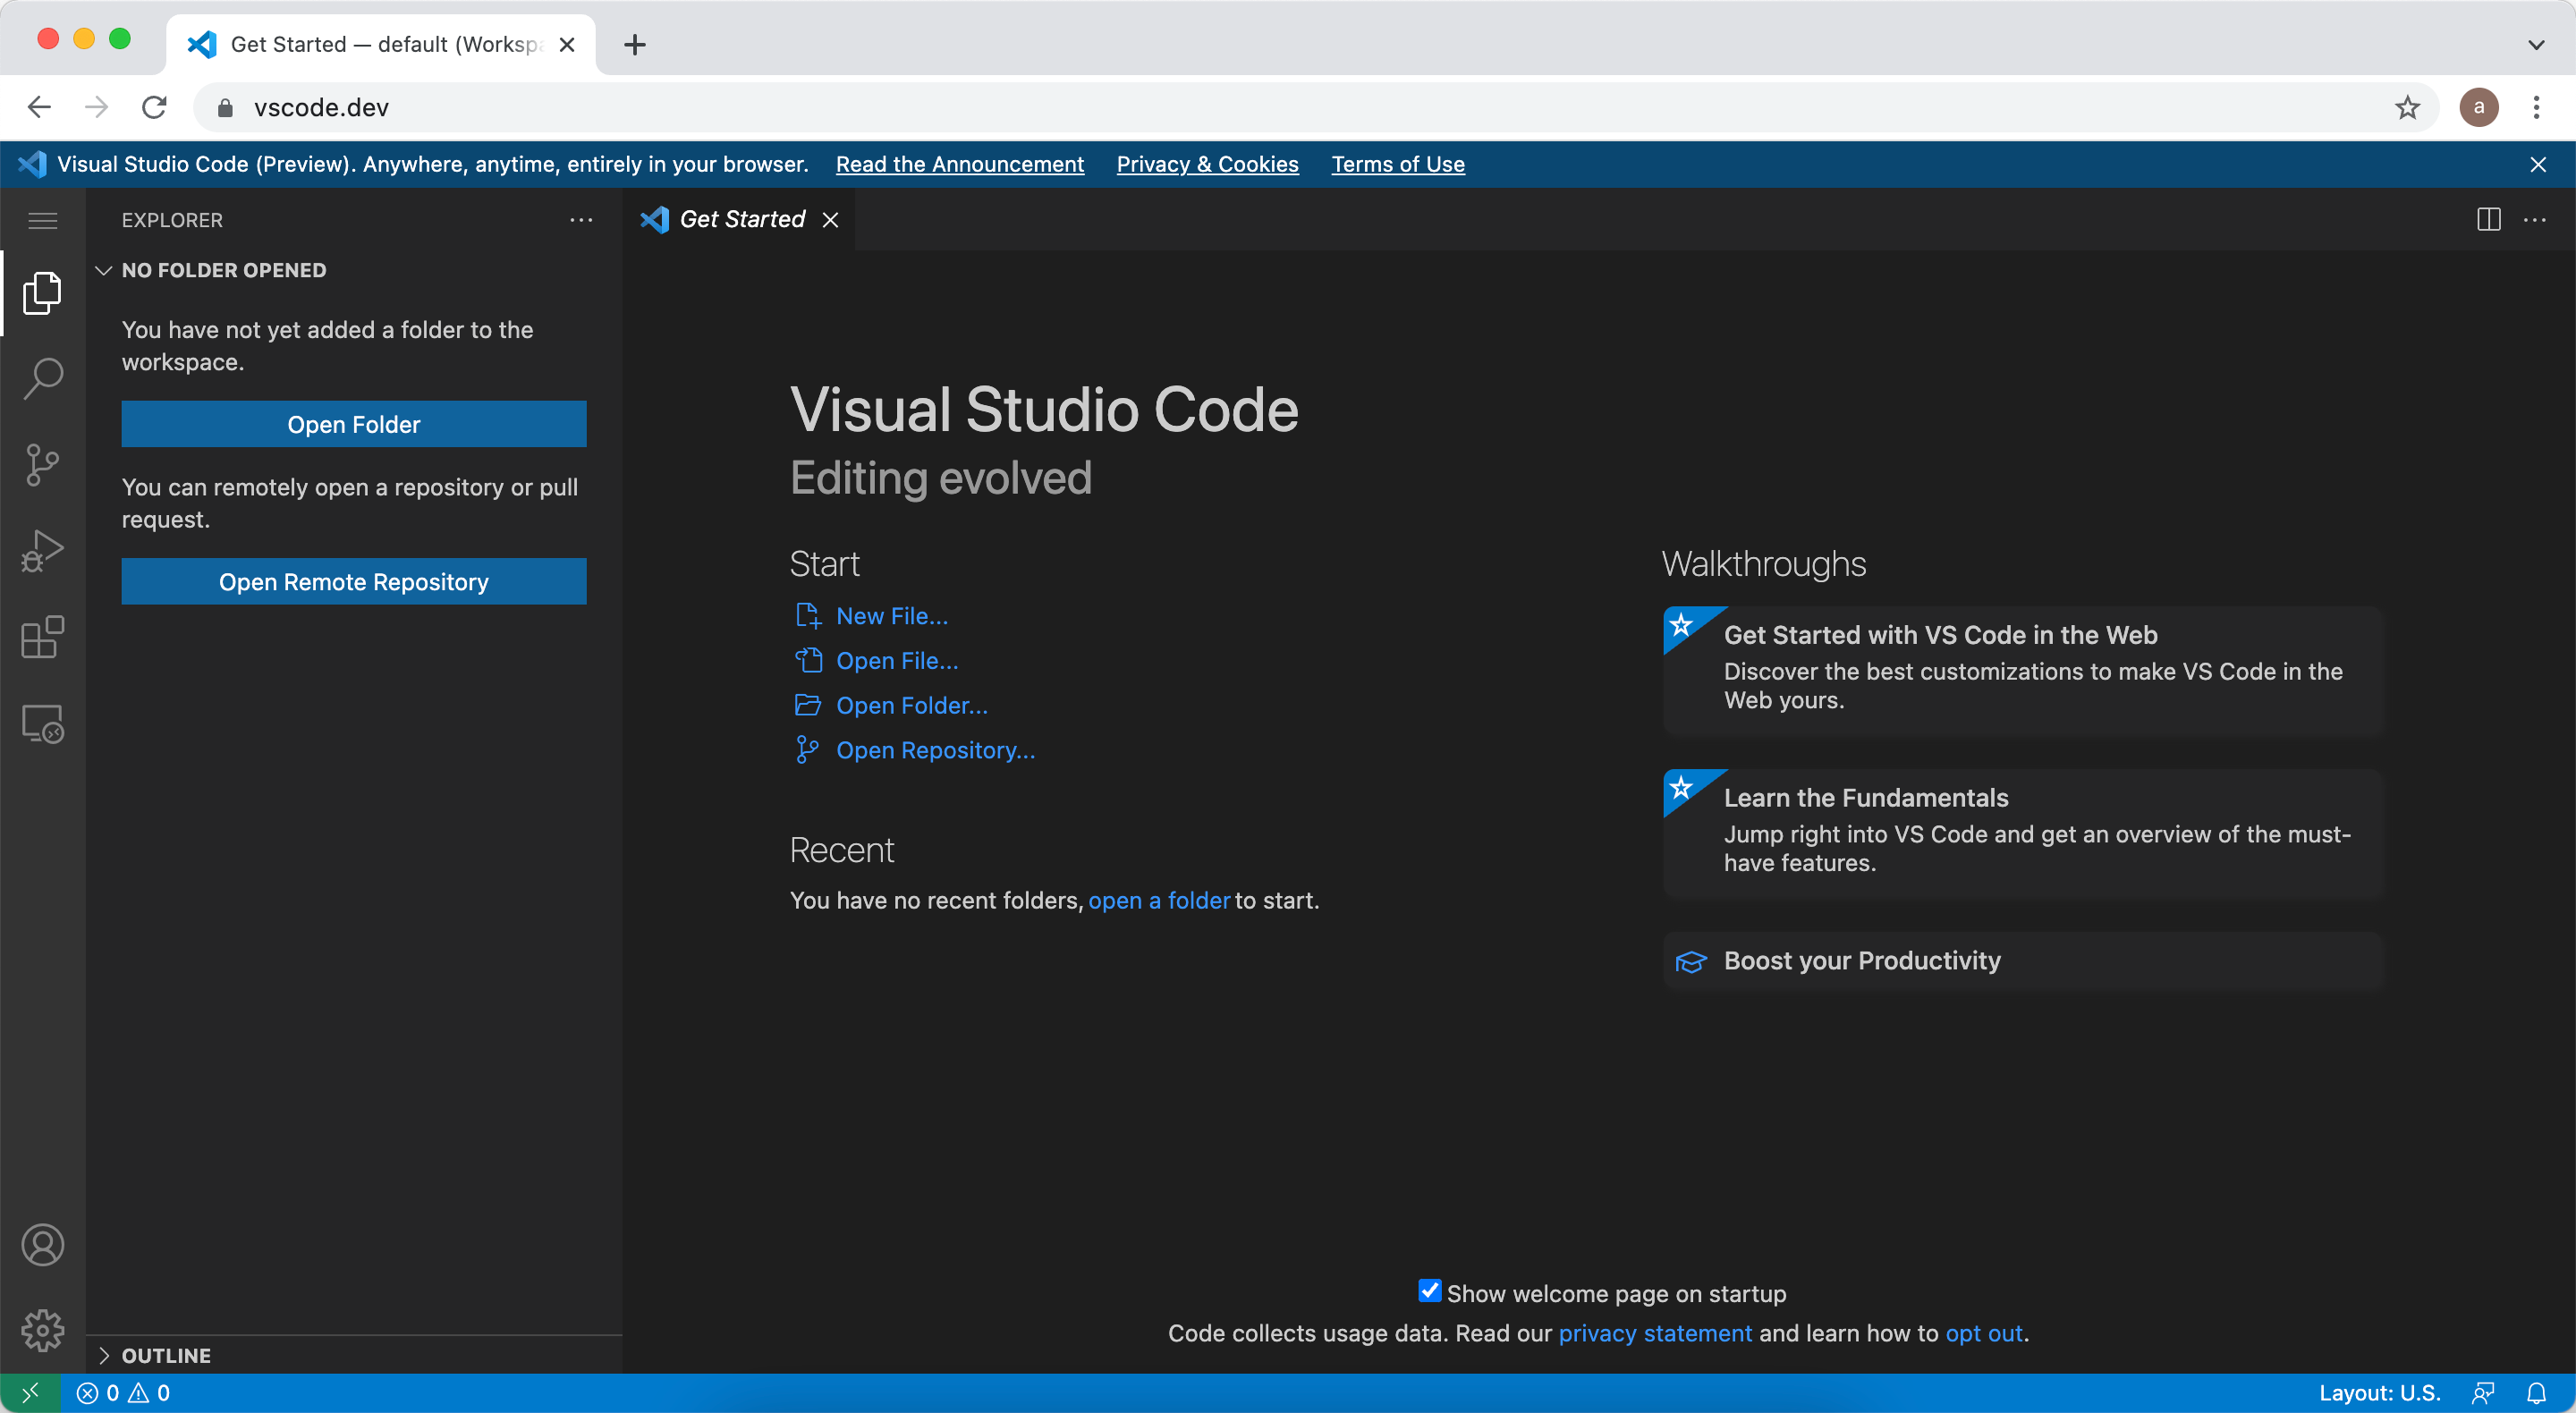 Visual Studio Code (VSCode) Now Available in Browser